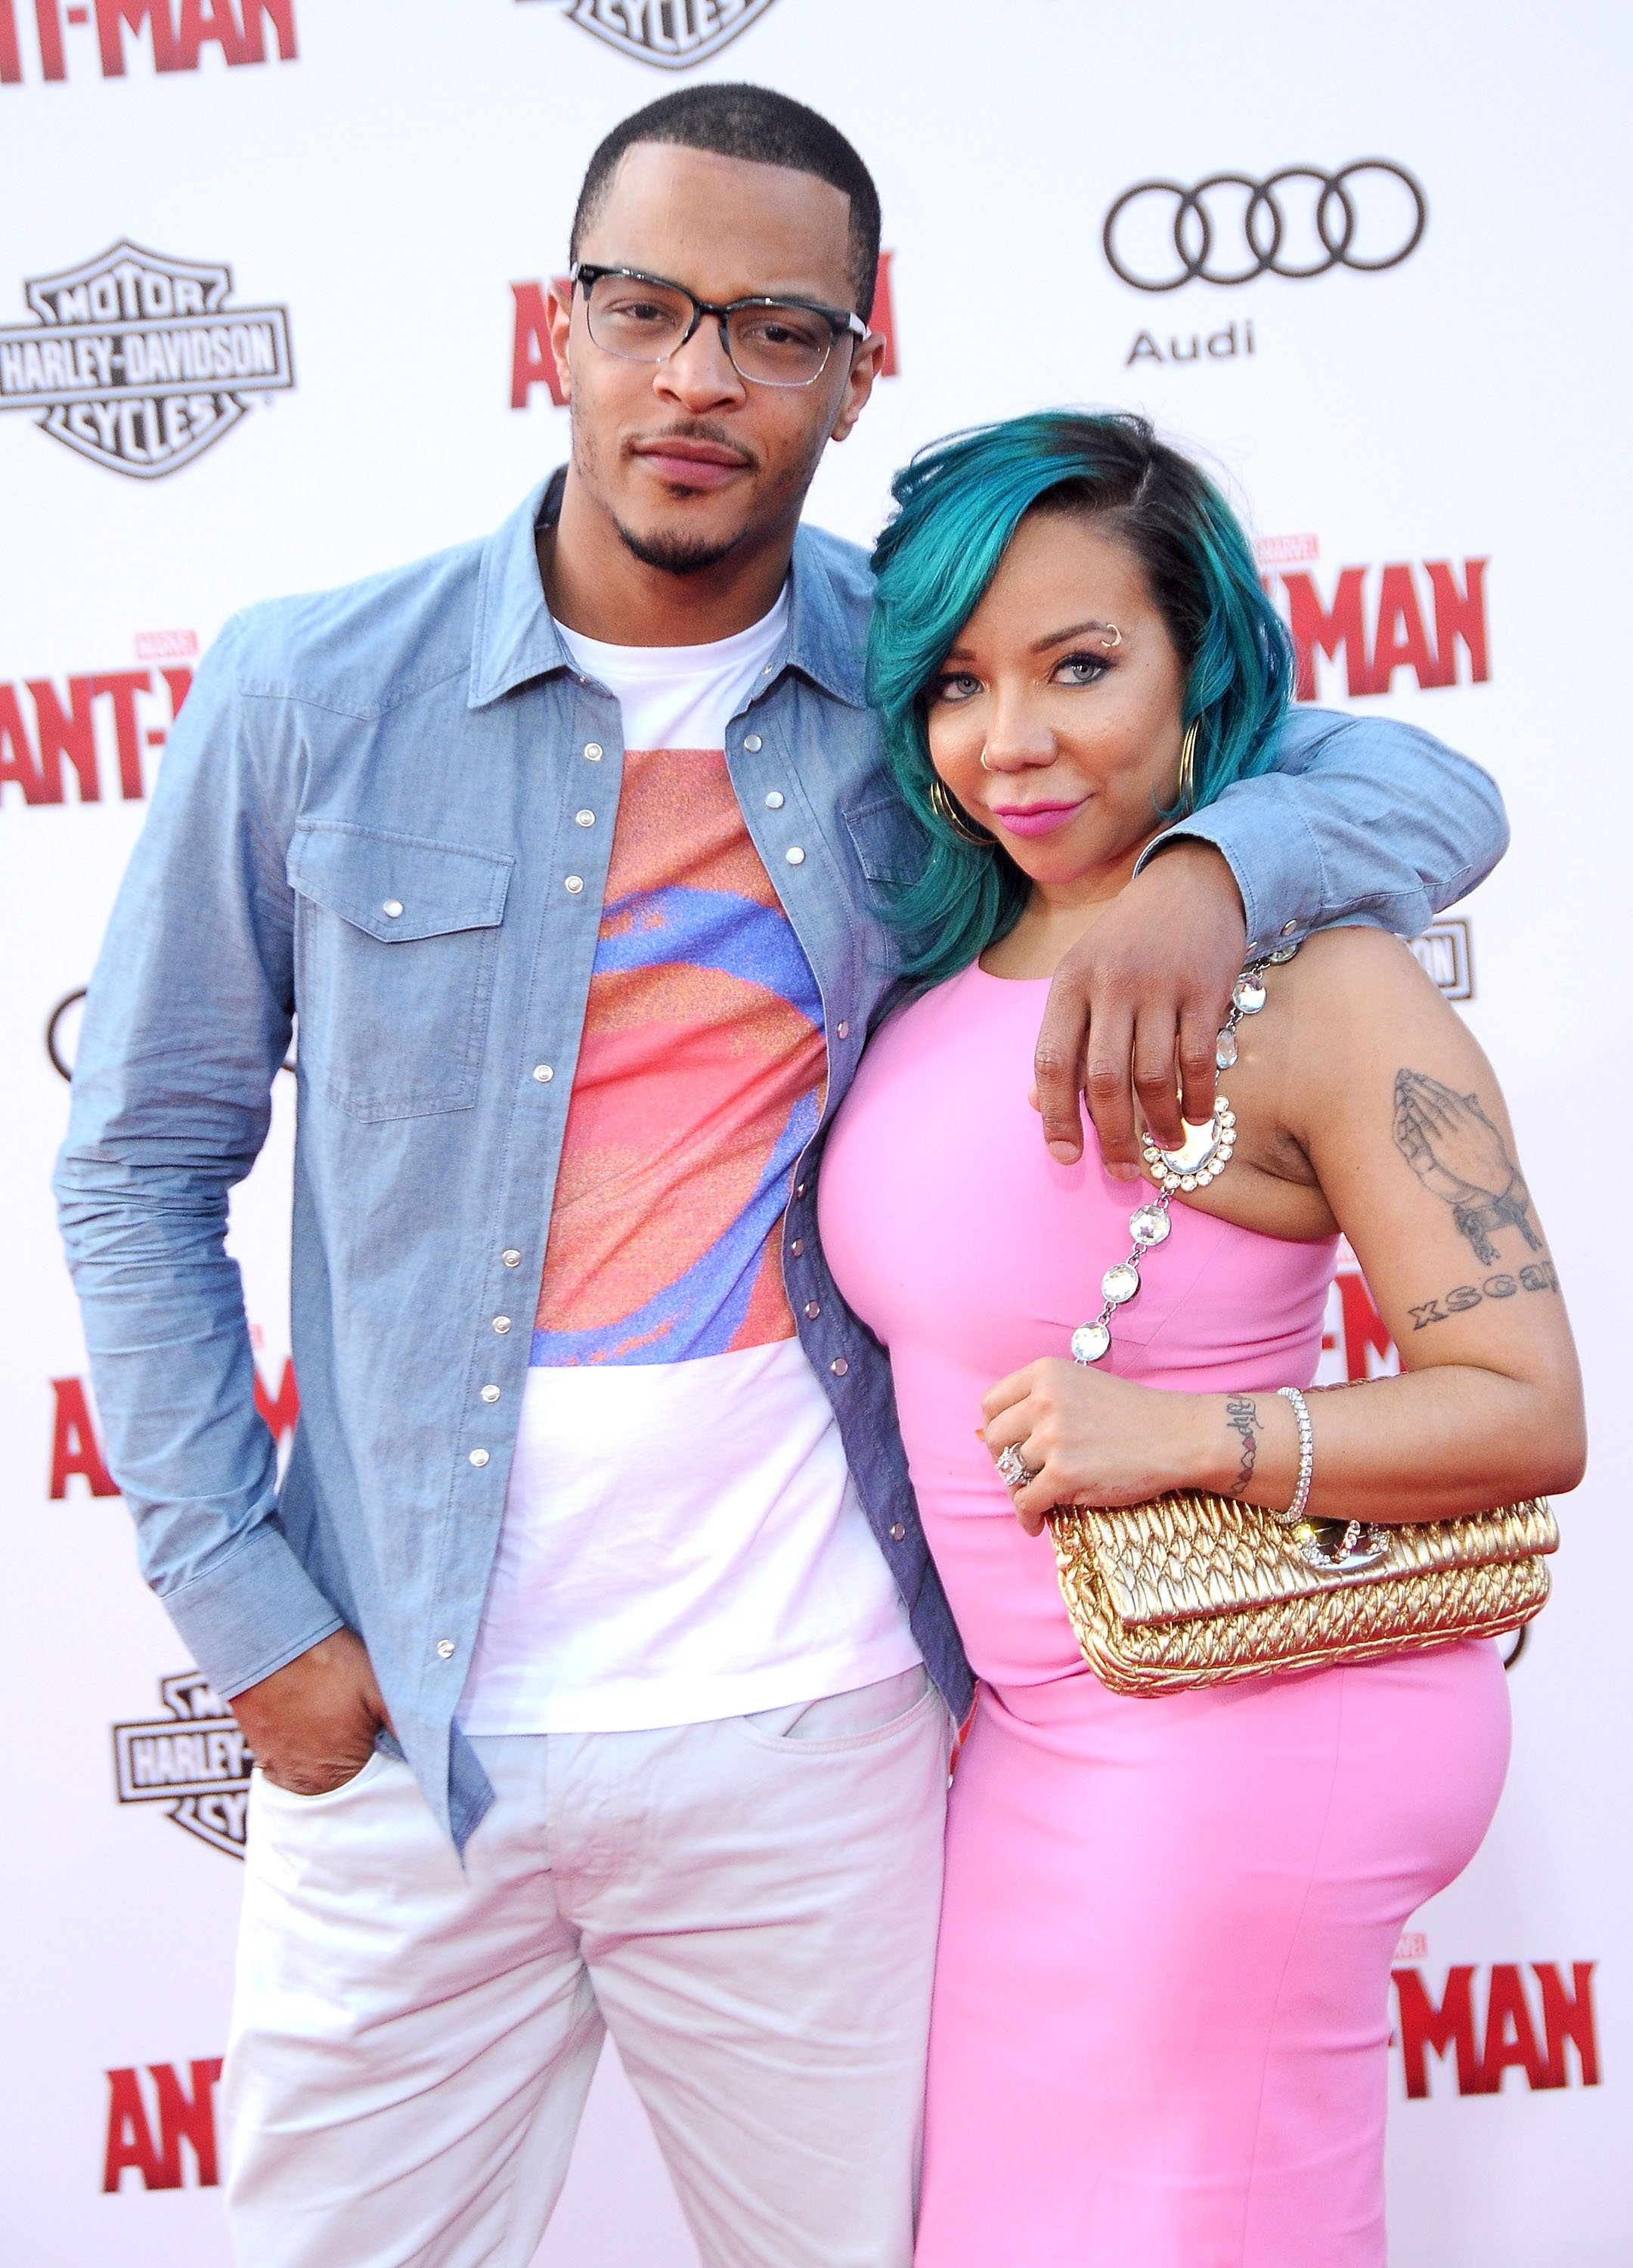 T.I. and Tiny at the Premiere of 'Ant-Man' at Dolby Theatre on June 29, 2015 in  California | Photo: Getty Images